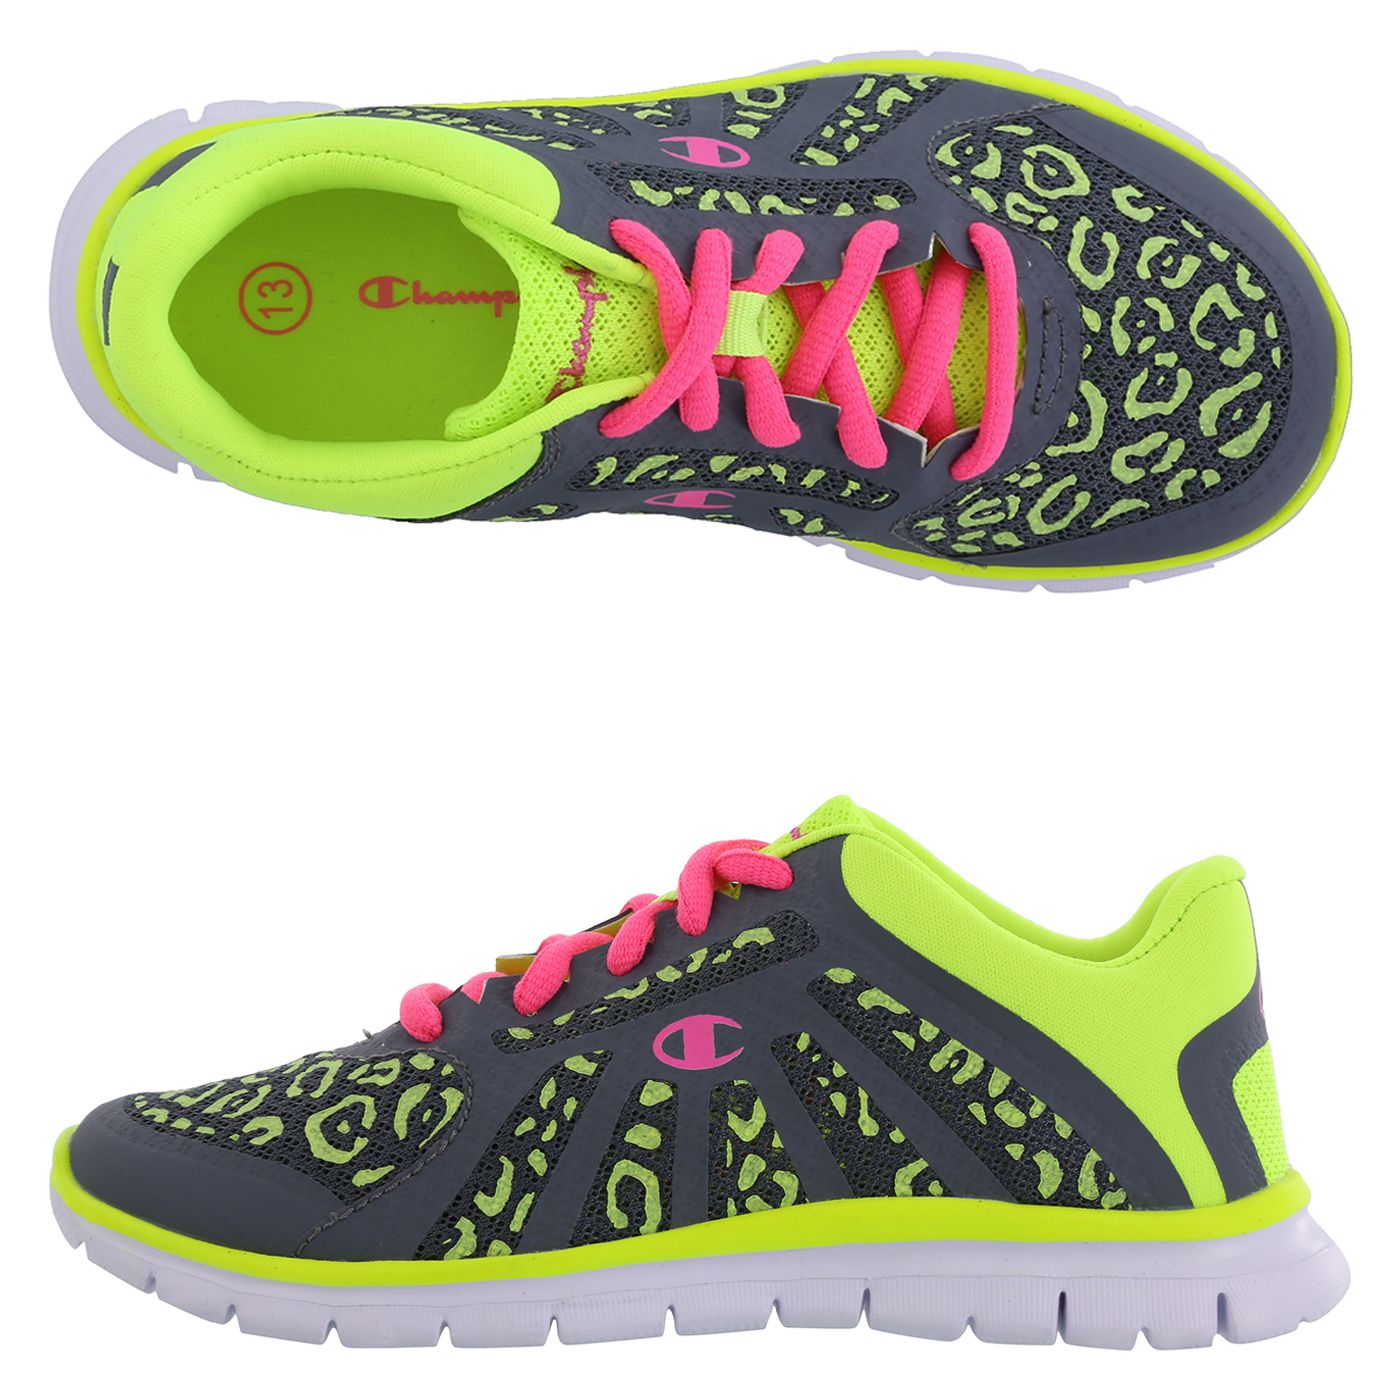 bd7a1a6ef83 My new shoes!! Girls Gusto Glow Runner